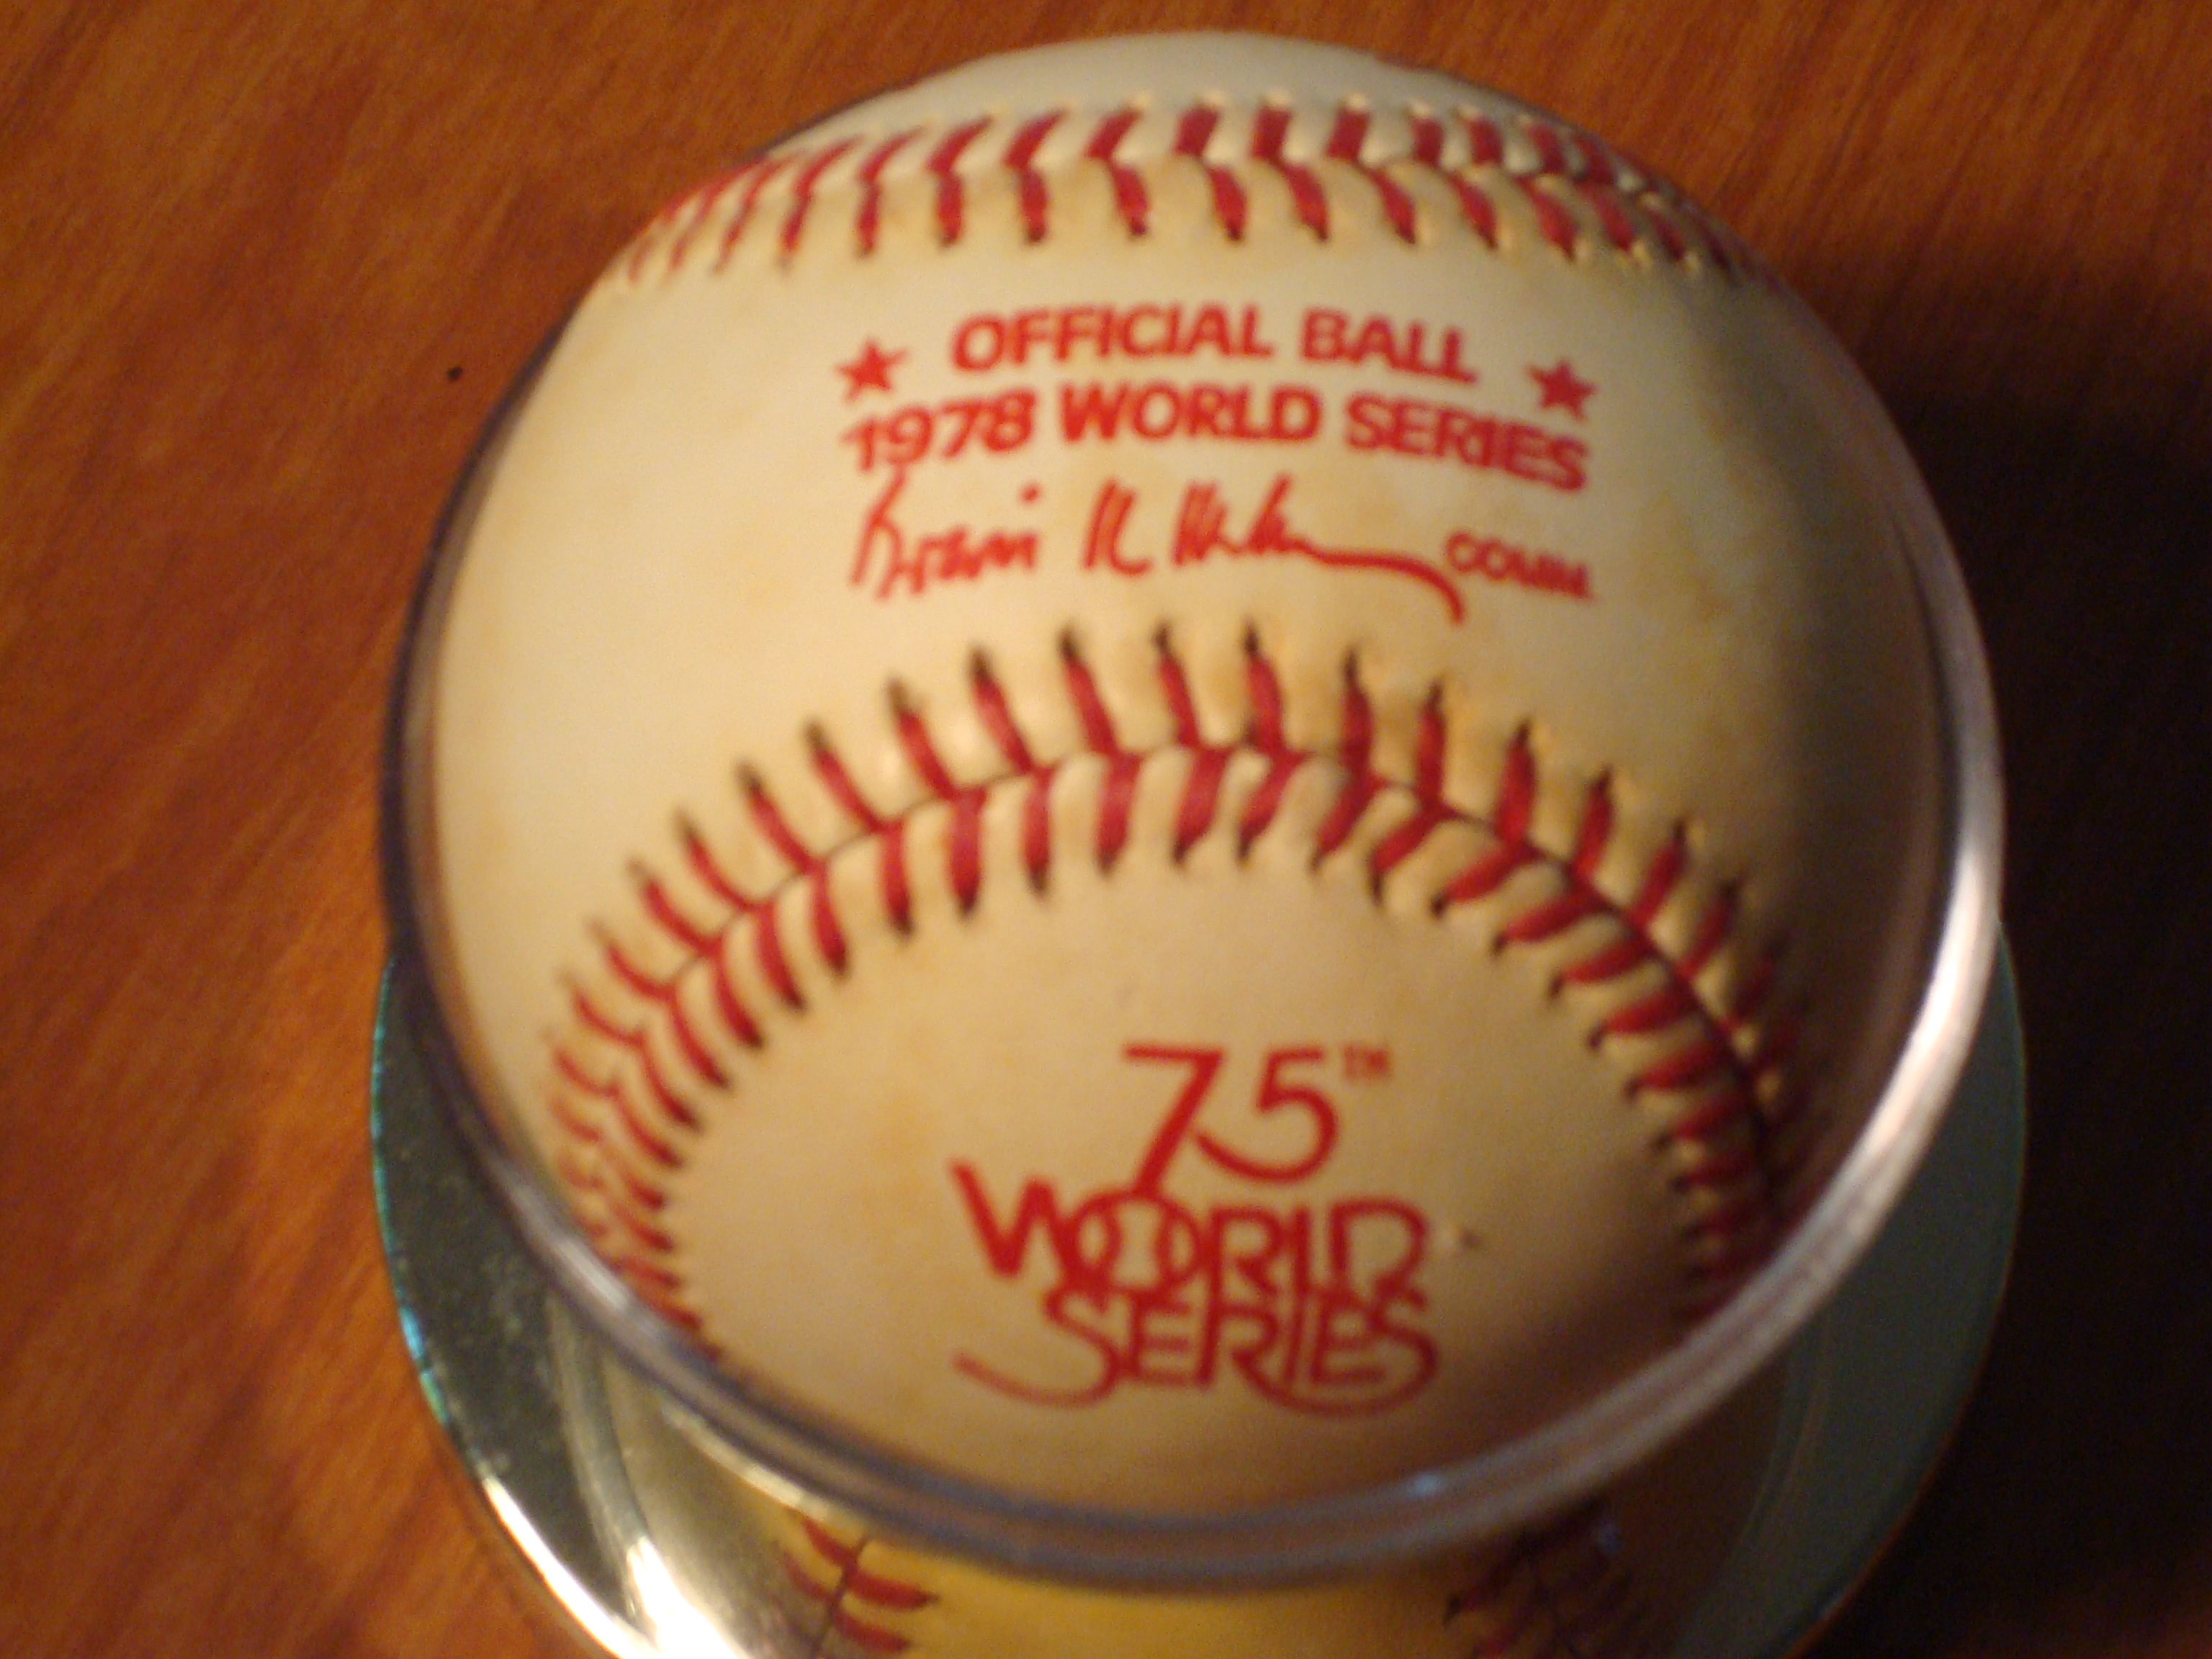 1978 Official World Series Ball - NY Yanks Champs